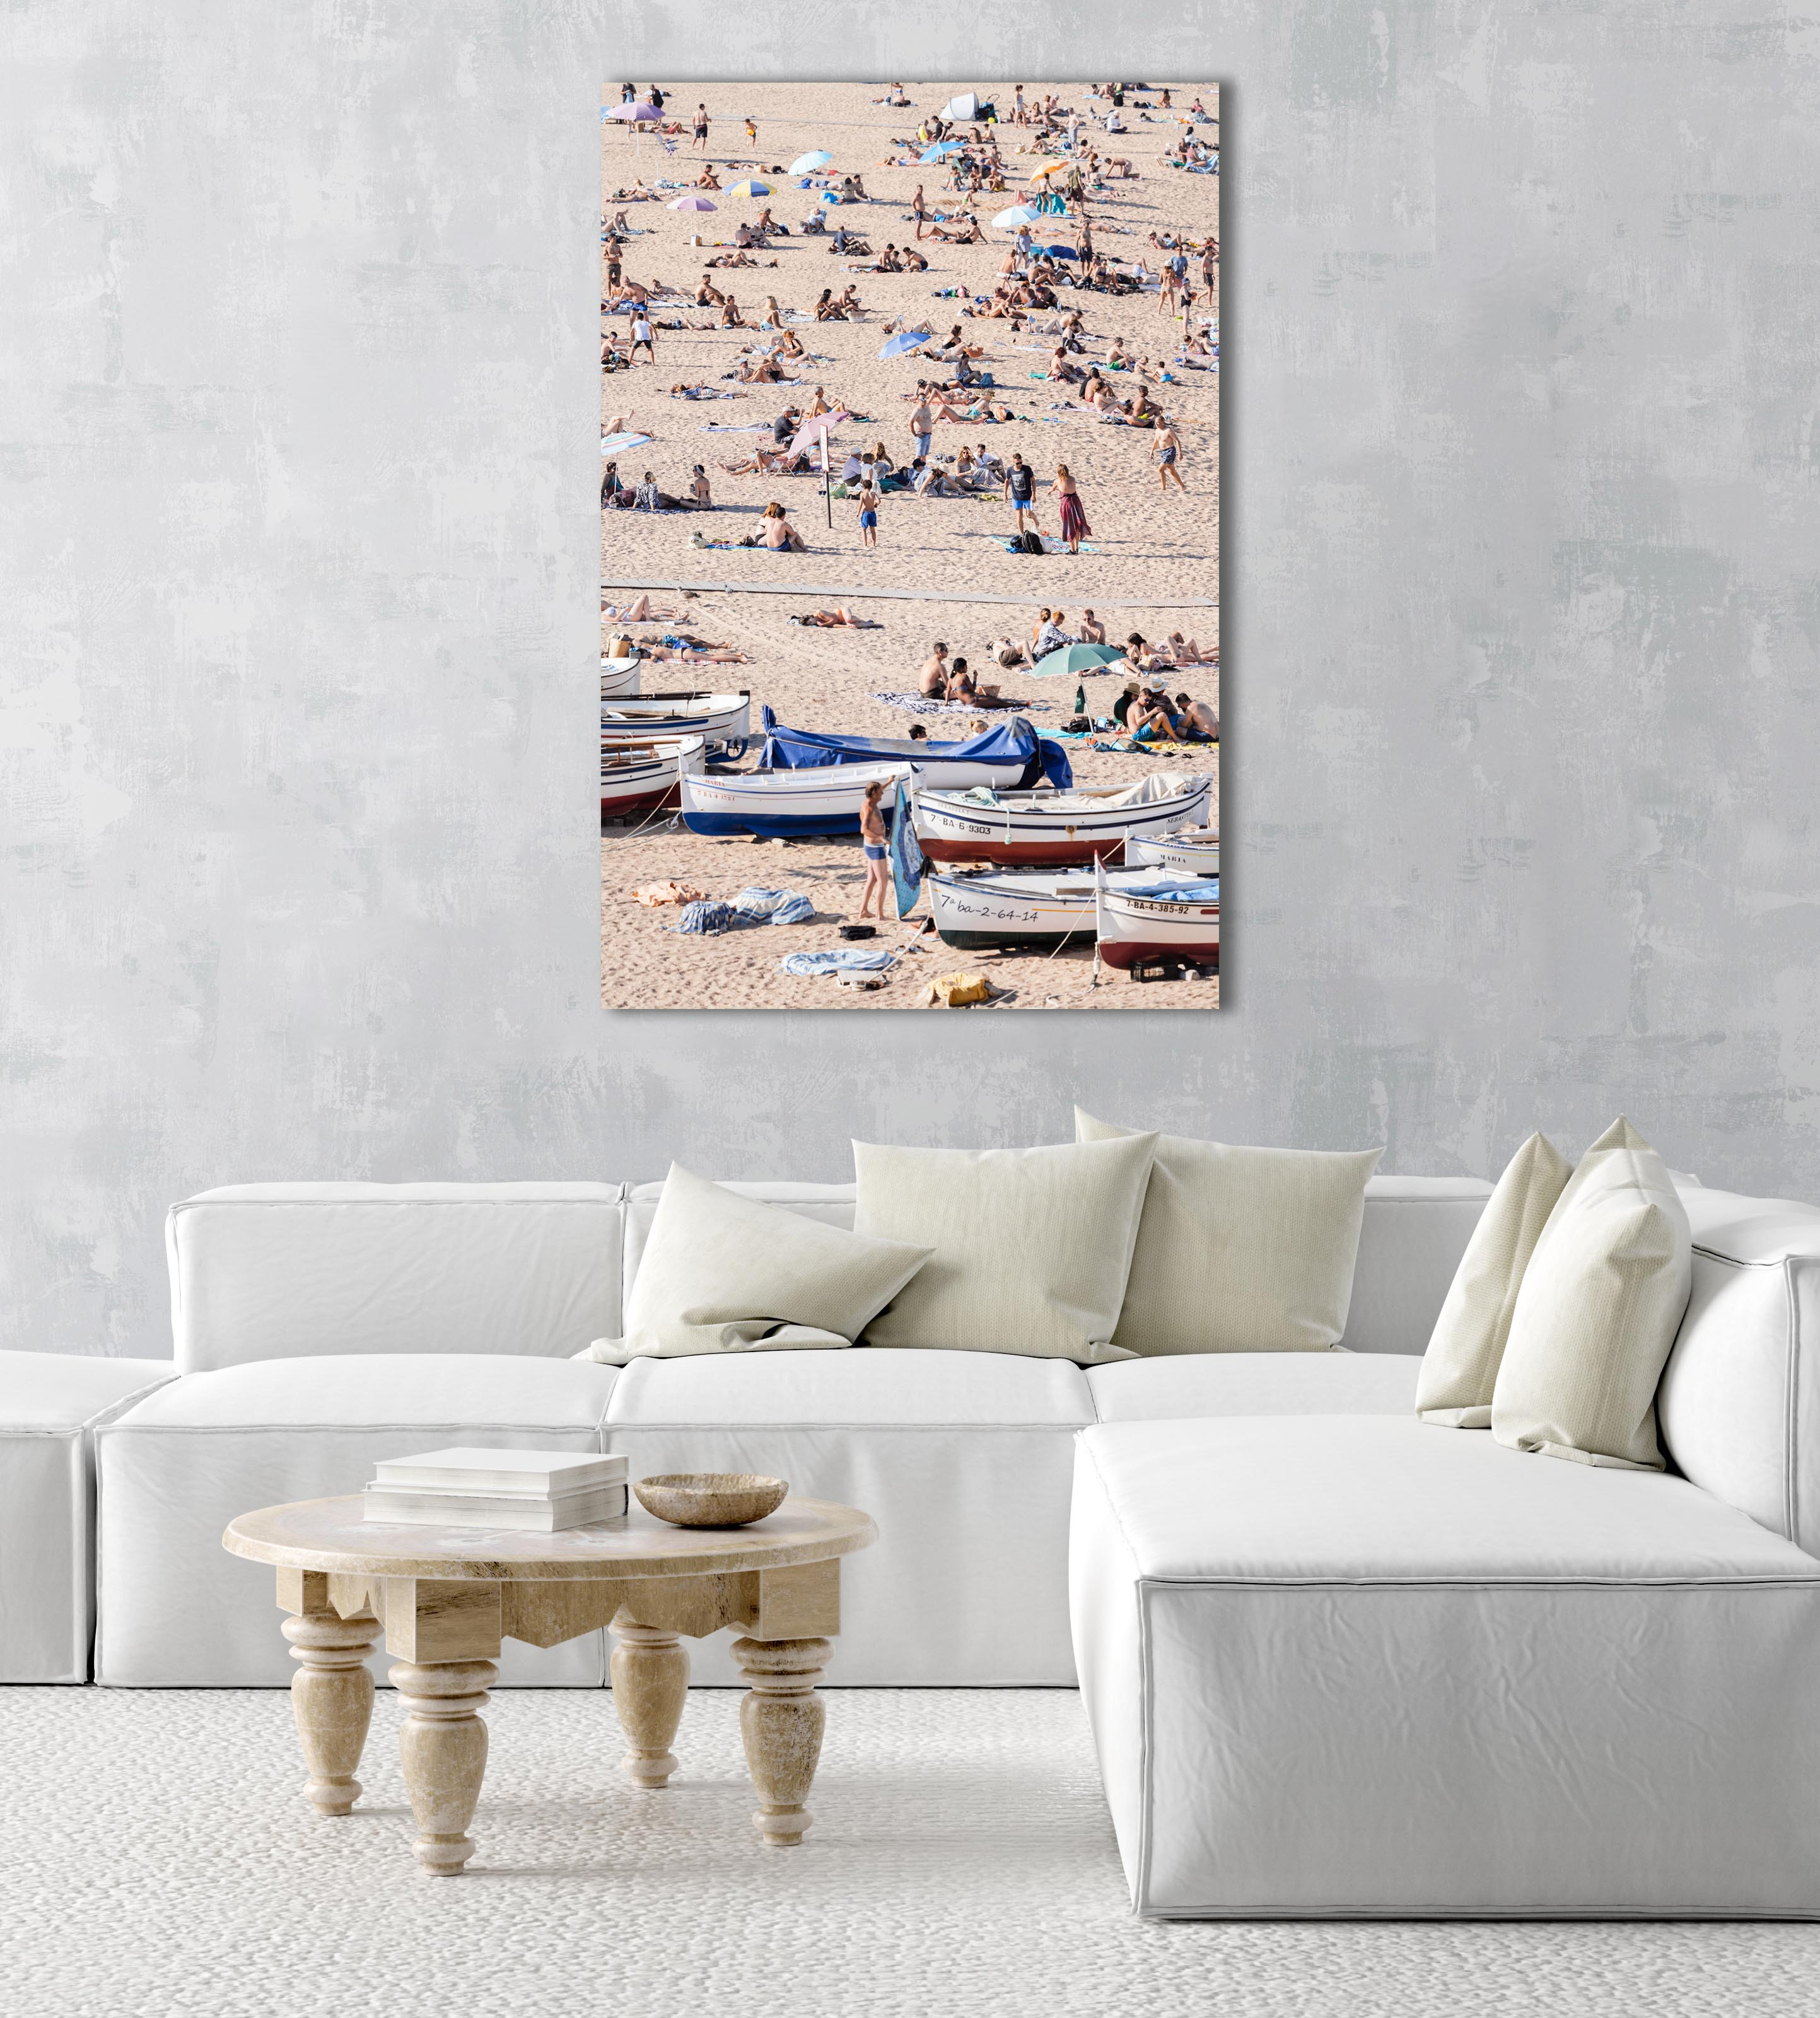 Boats and people scattered on Tossa de Mar beach in an acrylic/perspex frame